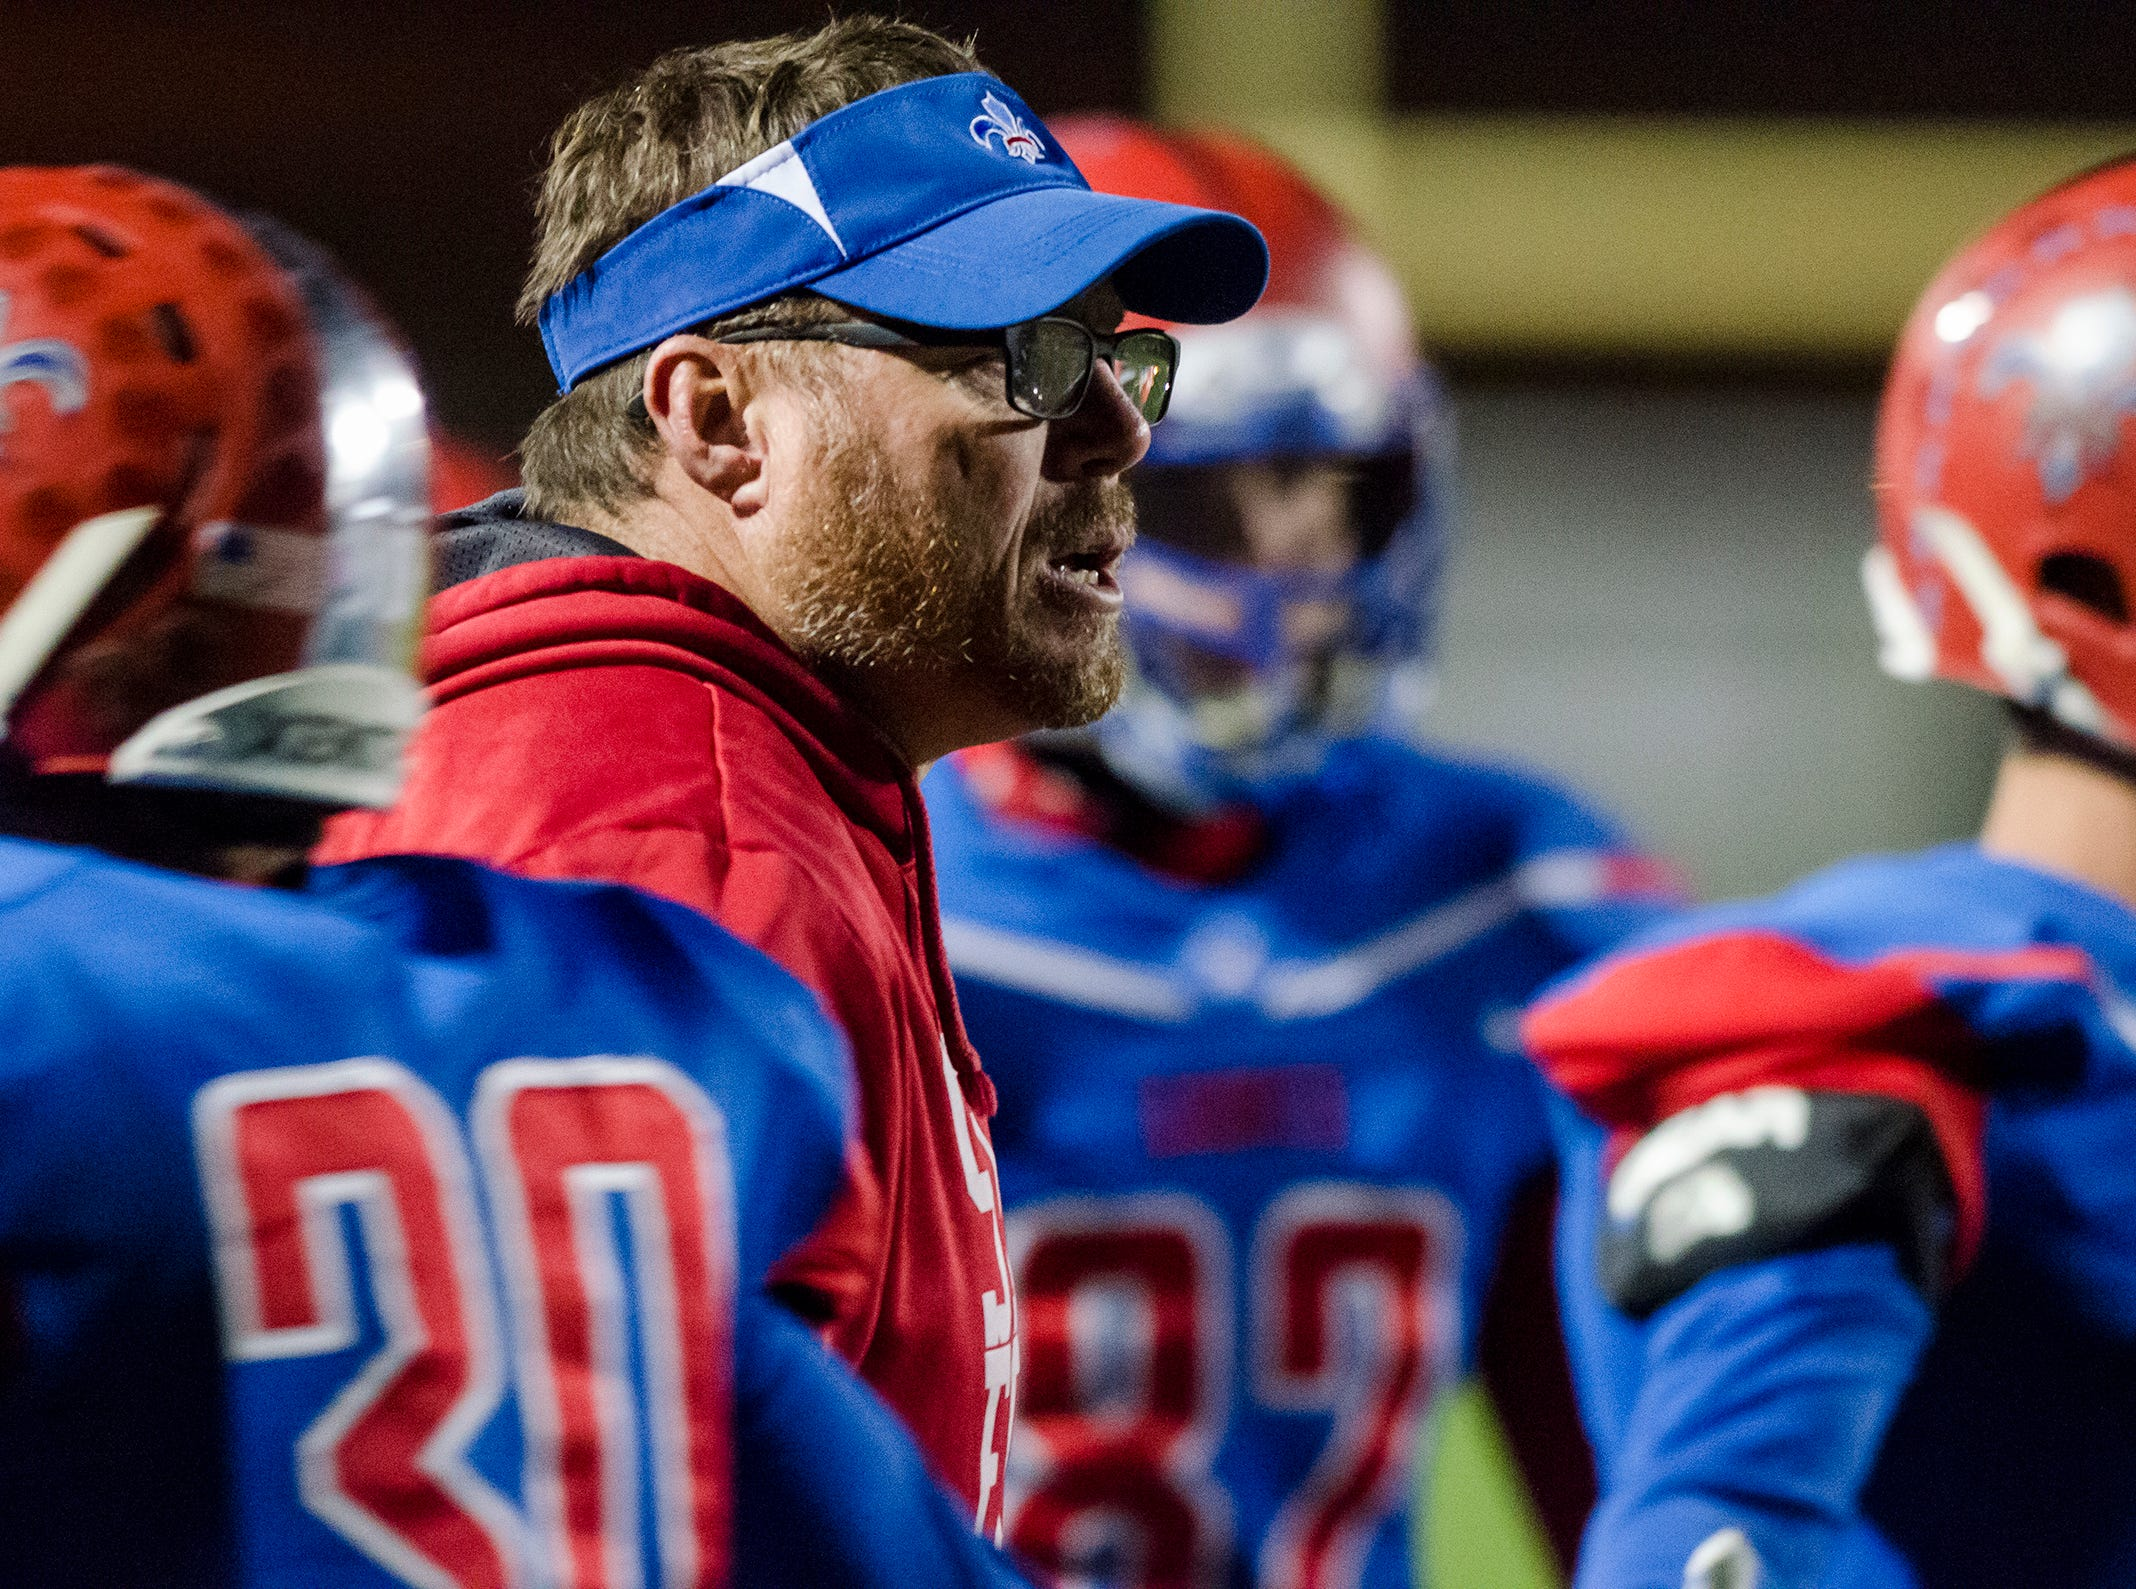 St. Clair High School head coach James Bishop talks to the team between plays during their division 4 district finals game against North Branch Saturday, Nov. 3, 2018 at East China Stadium.